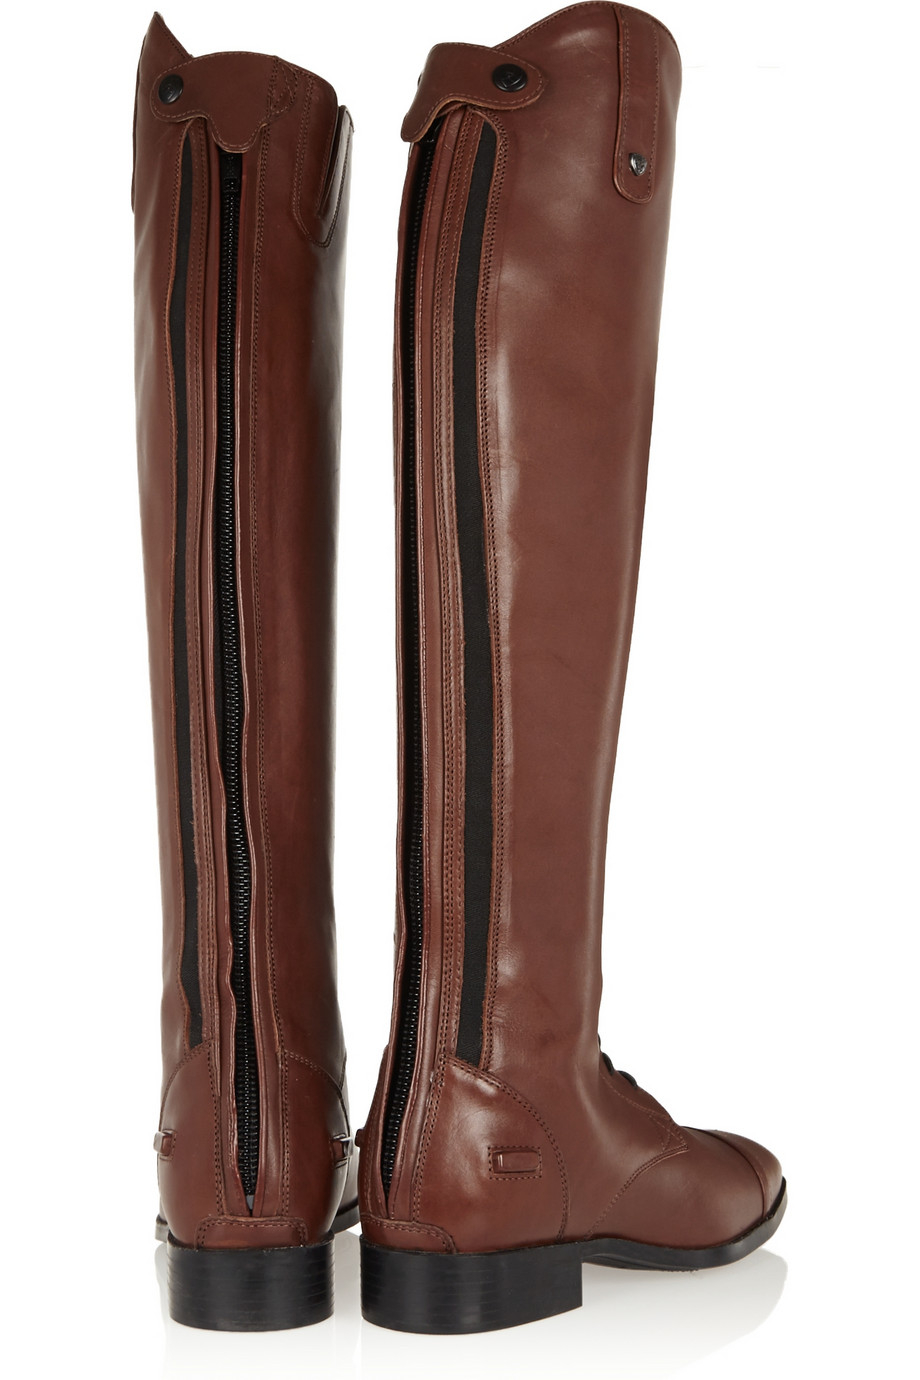 Ariat Challenge Contour Leather Slim-Fit Riding Boots in Brown | Lyst